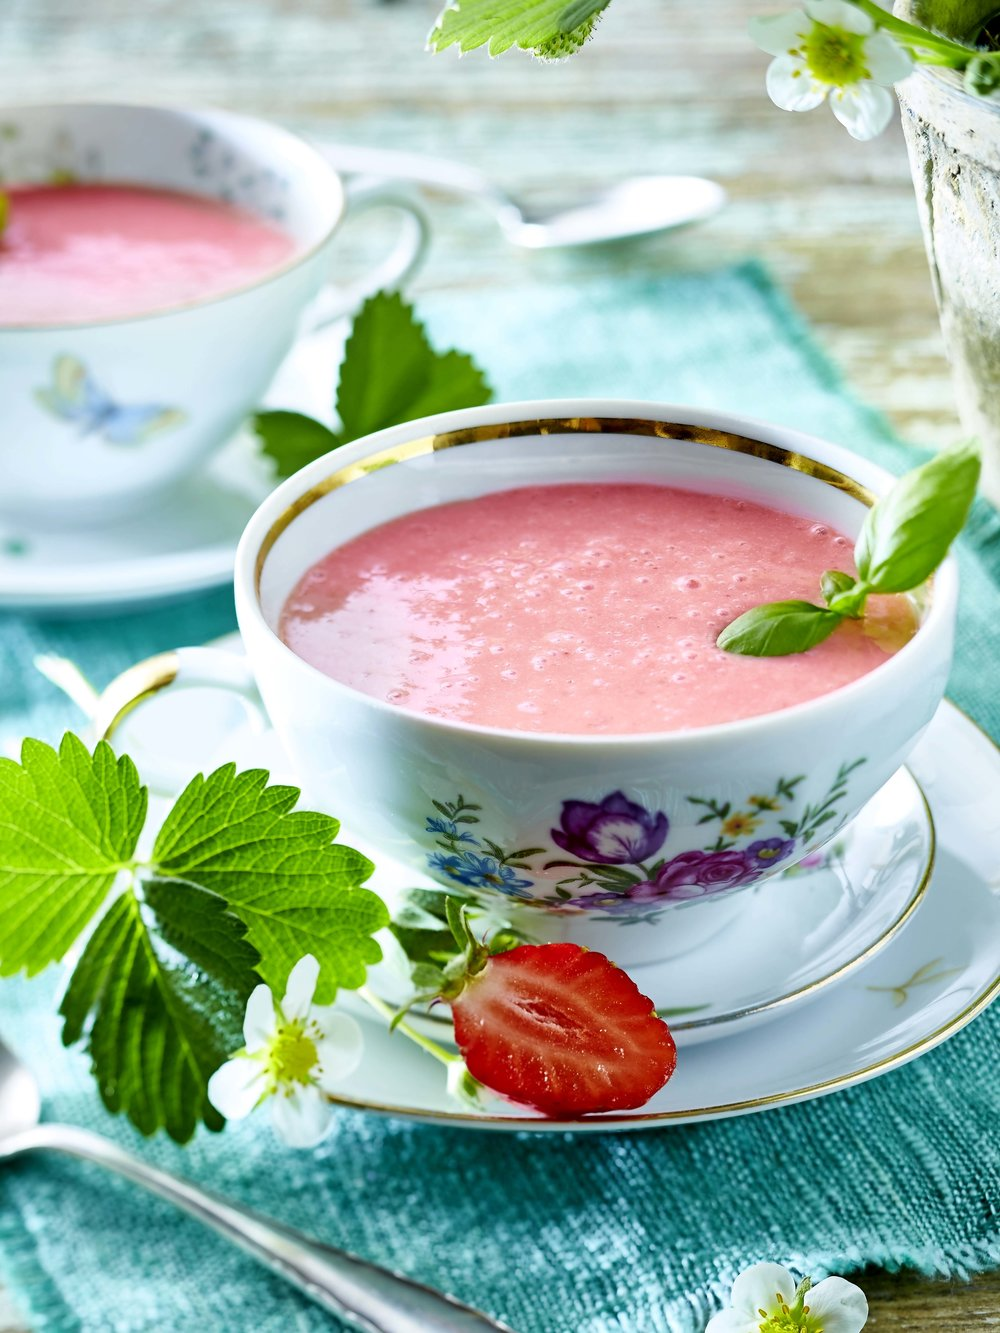 Chilled strawberry soup, a delightfully simple dessert. From a recipe in the July 2018 issue of LandScape